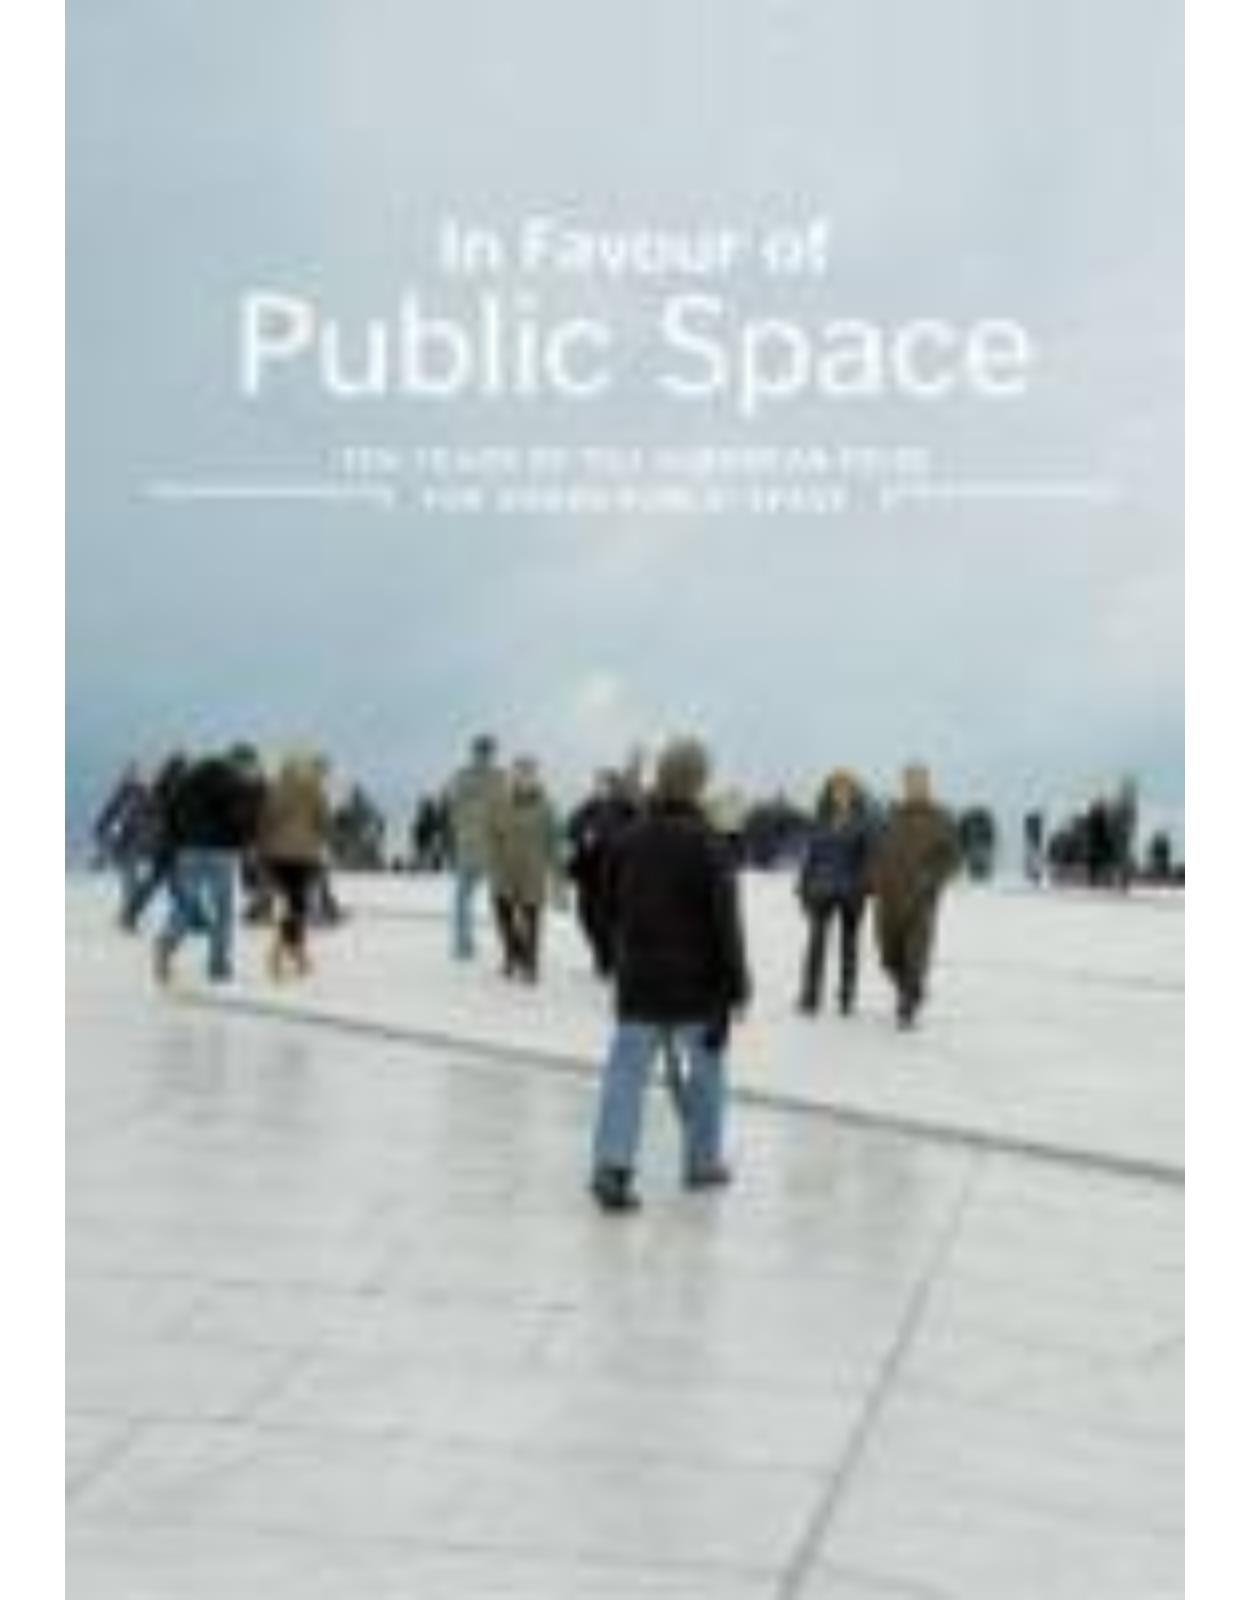 In Favour of Public Space: Ten Years of the European Prize for Urban Public Space